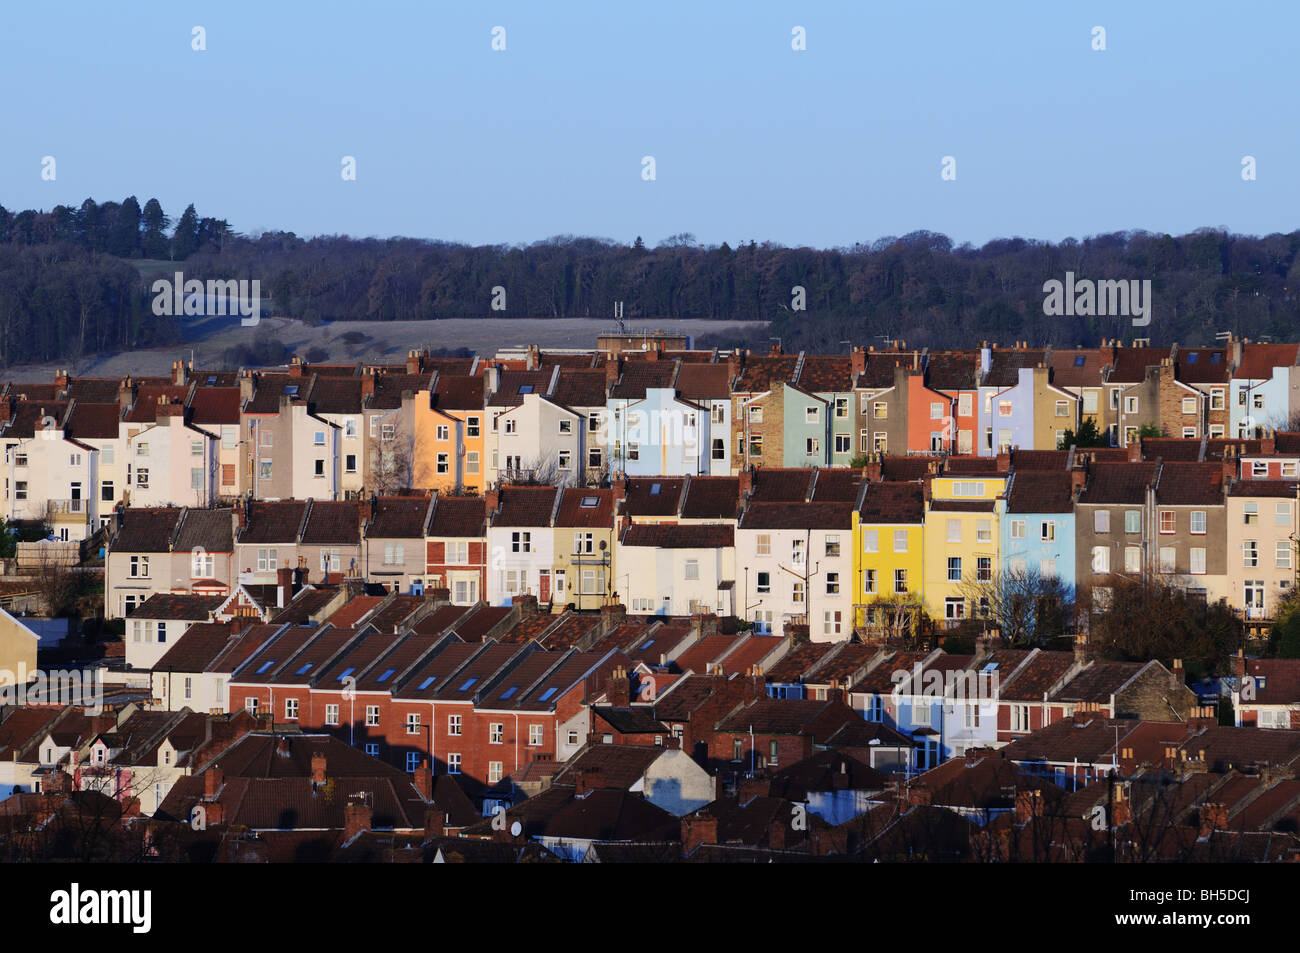 Old terraced housing tightly packed on a hill in cold morning light - Stock Image